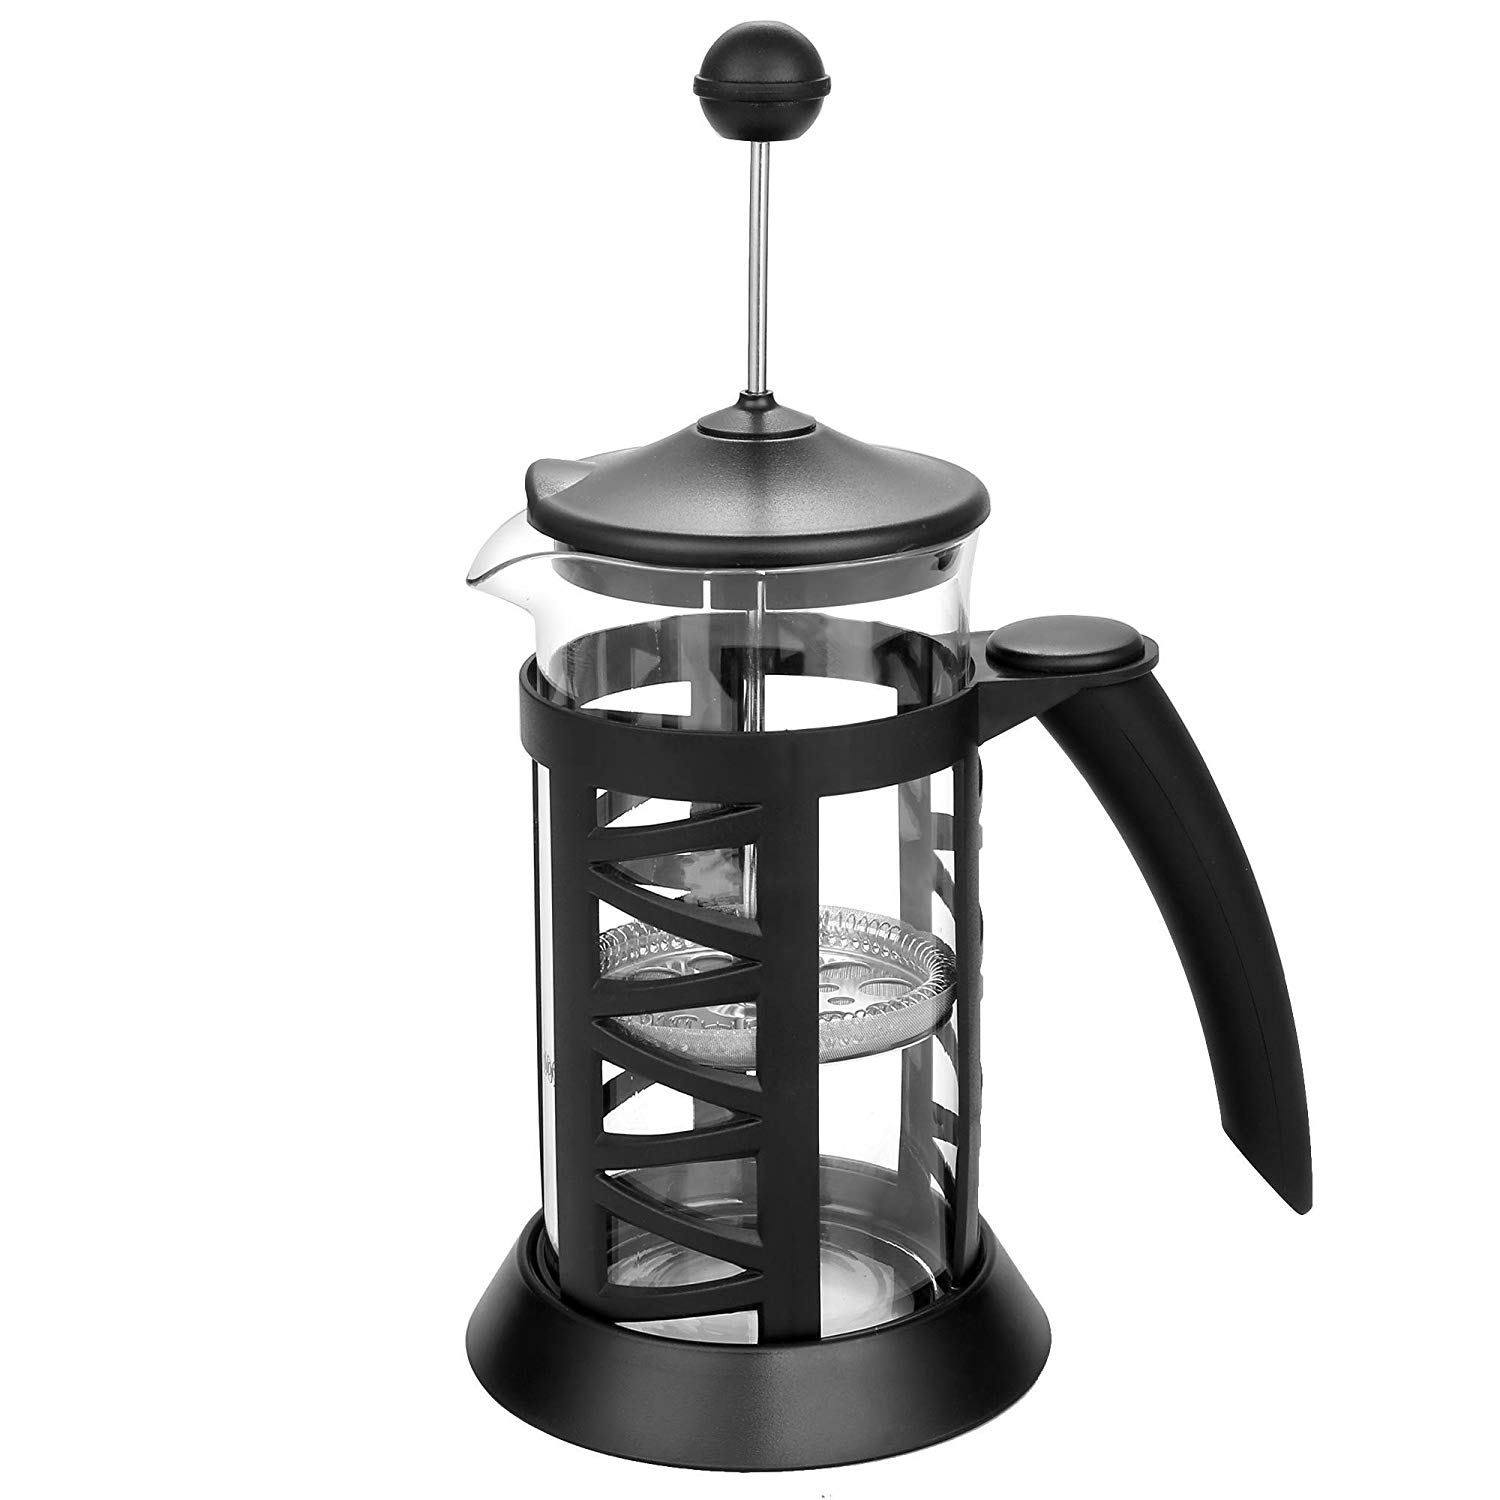 Opino French Press Coffee Maker 34 oz/8 Cup (1 Liter) Espresso with Stainless Steel(US Stock)